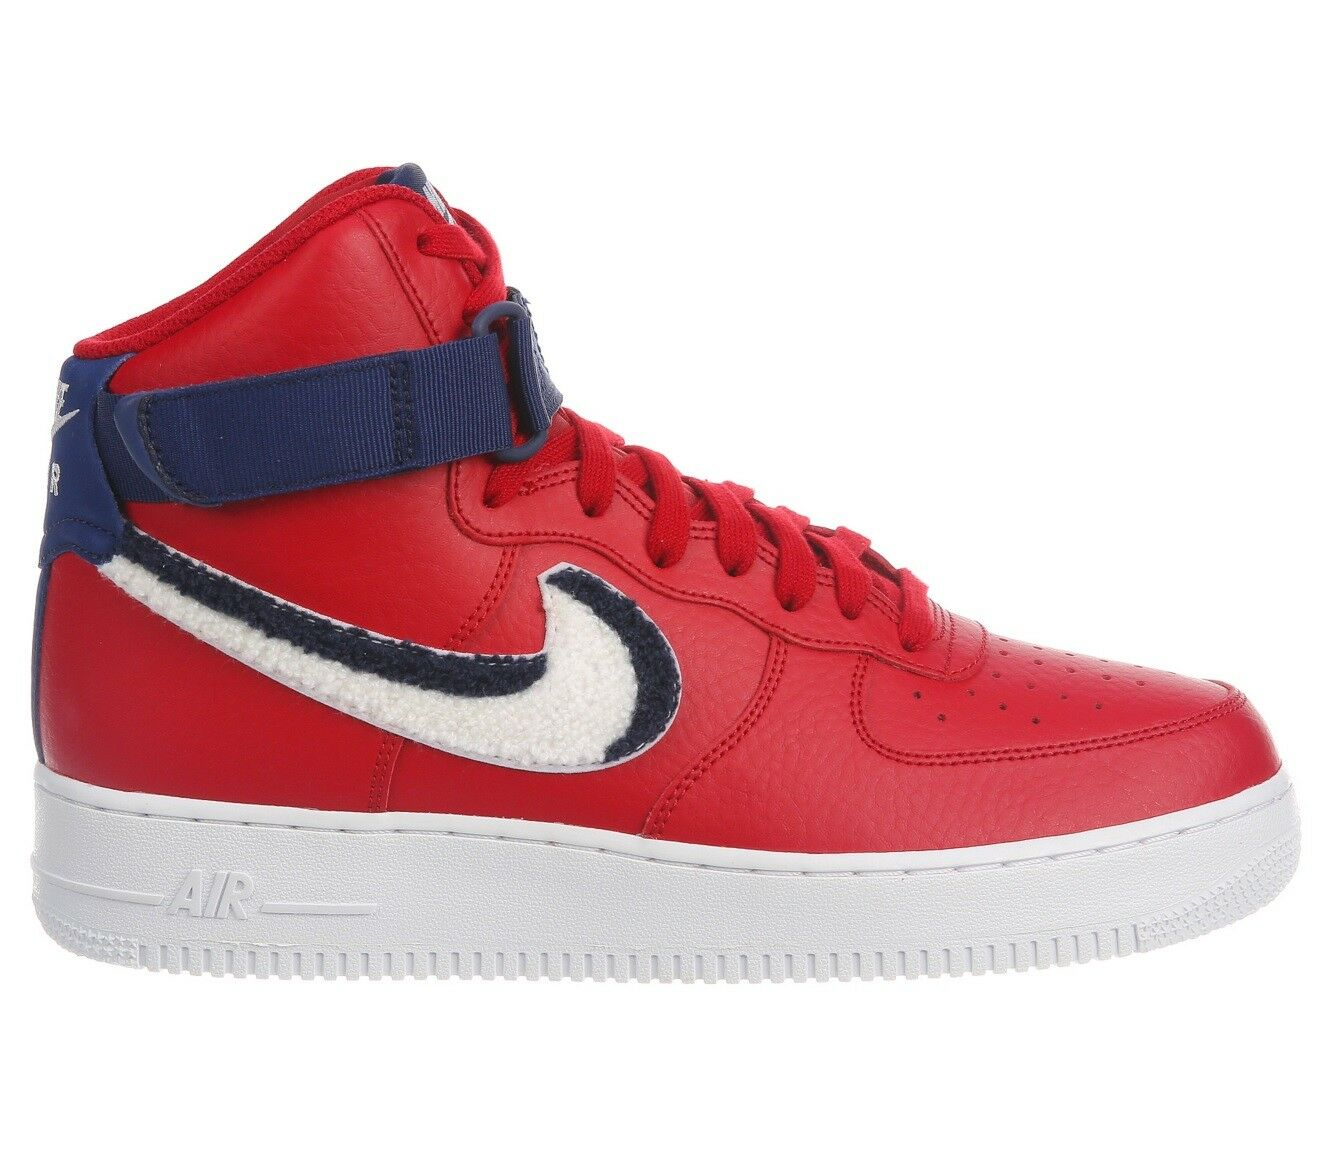 Nike Air Force 1 High '07 LV8 Varsity Mens 806403-603 Red Blue Shoes Comfortable Seasonal clearance sale